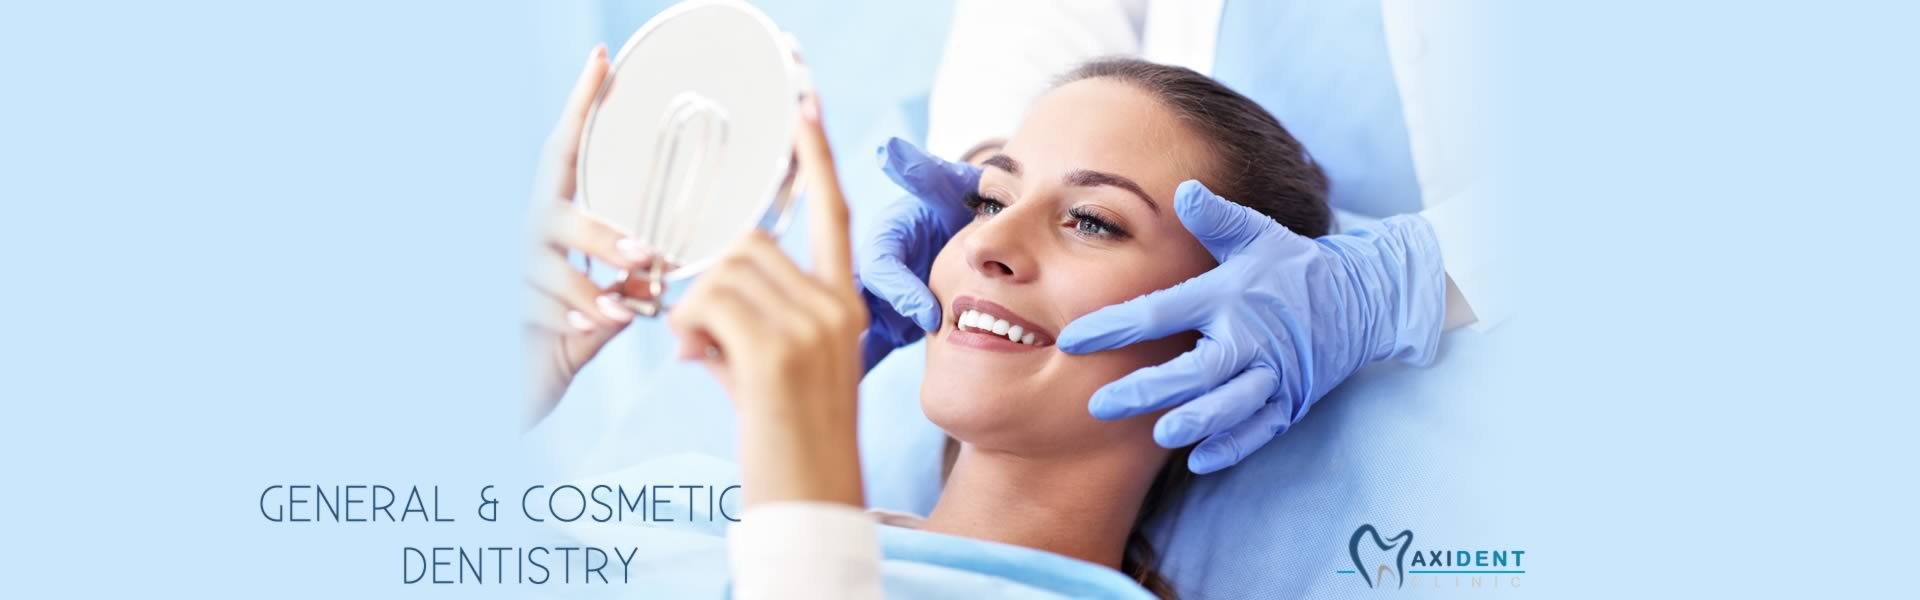 General & Cosmetic Dentistry At Maxident Clinic